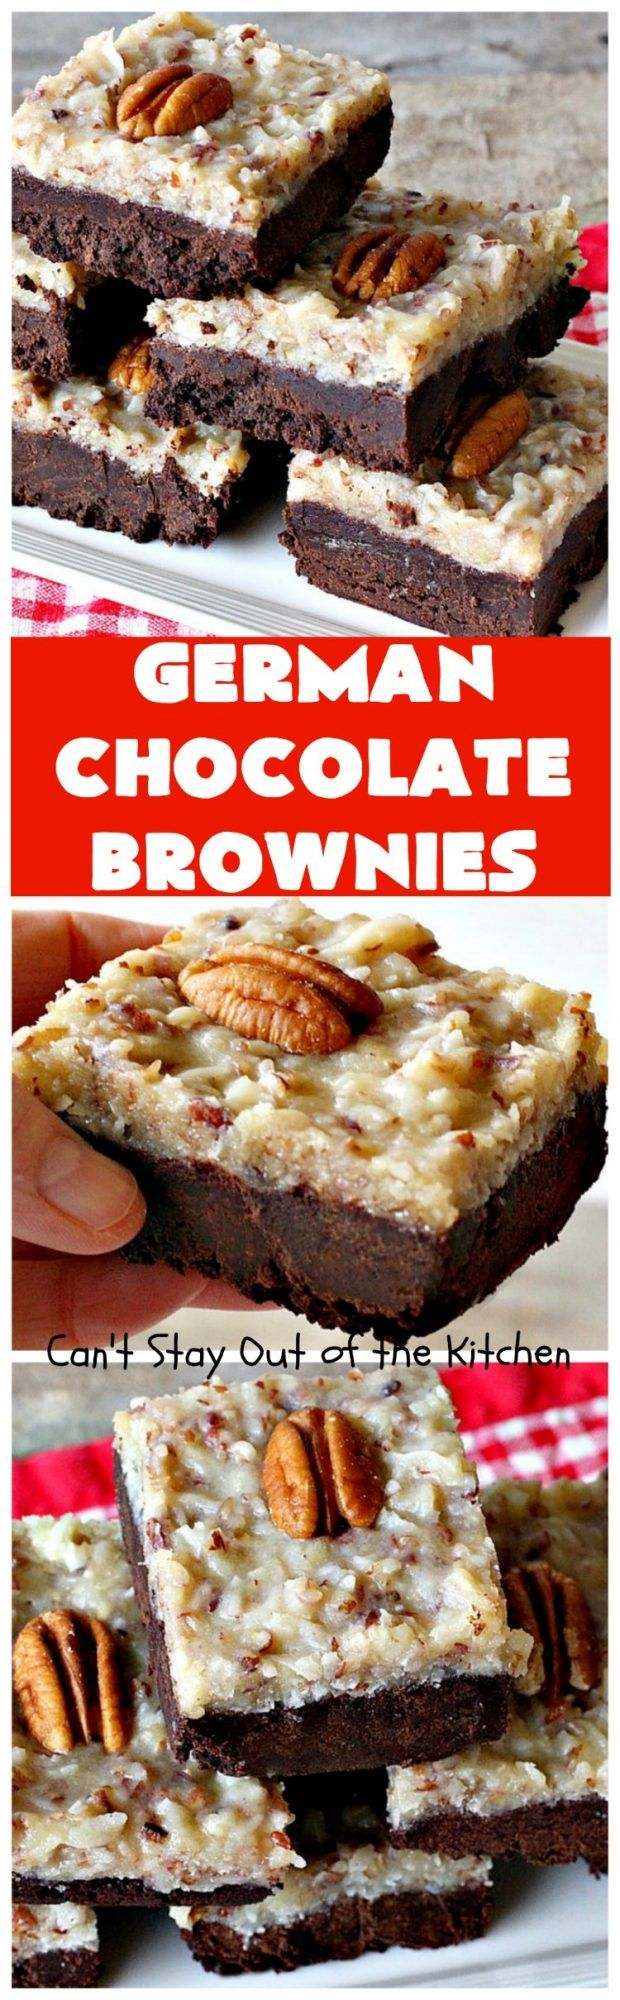 German Chocolate Brownies | These sensational#brownies have a thick, dense, fudgy chocolate layer topped with coconut pecan icing. These are a seriously addictive dessert!